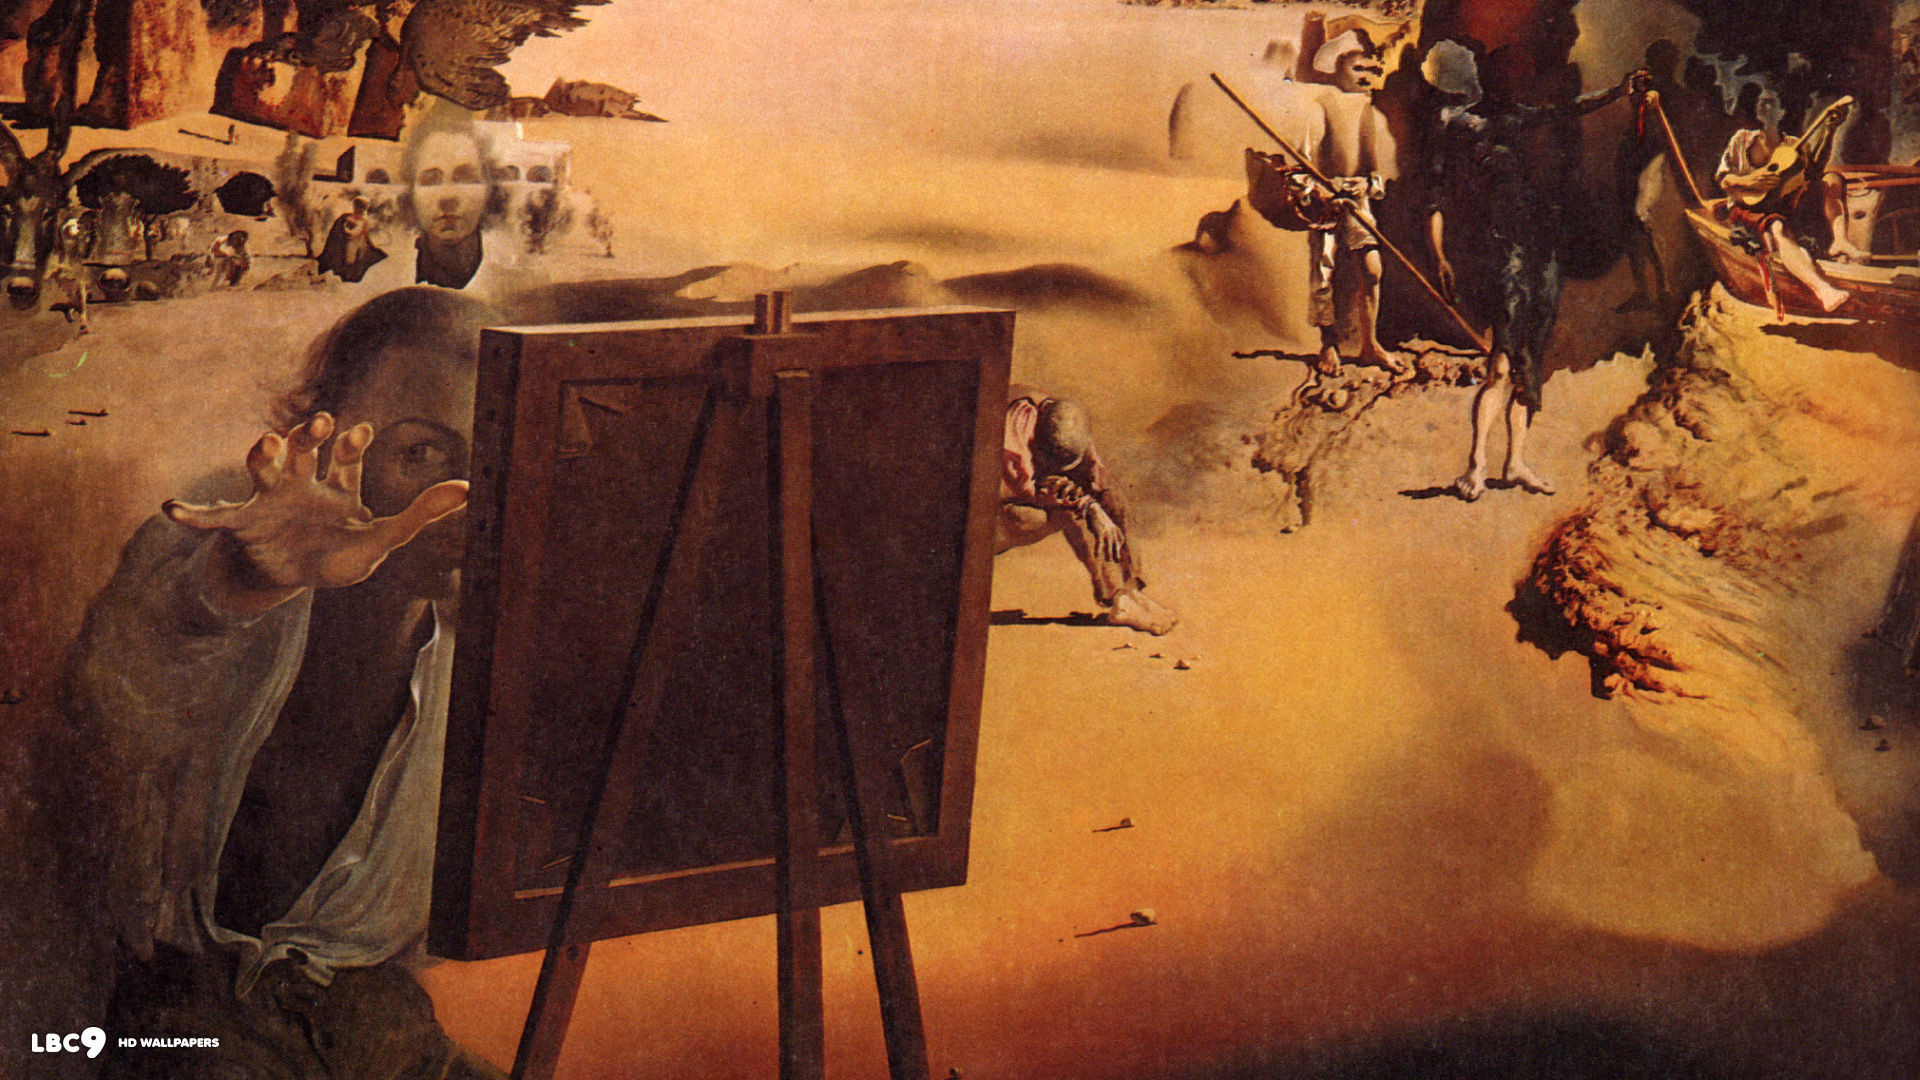 1920x1080 salvador dali wallpaper 1738 paintings hd backgrounds